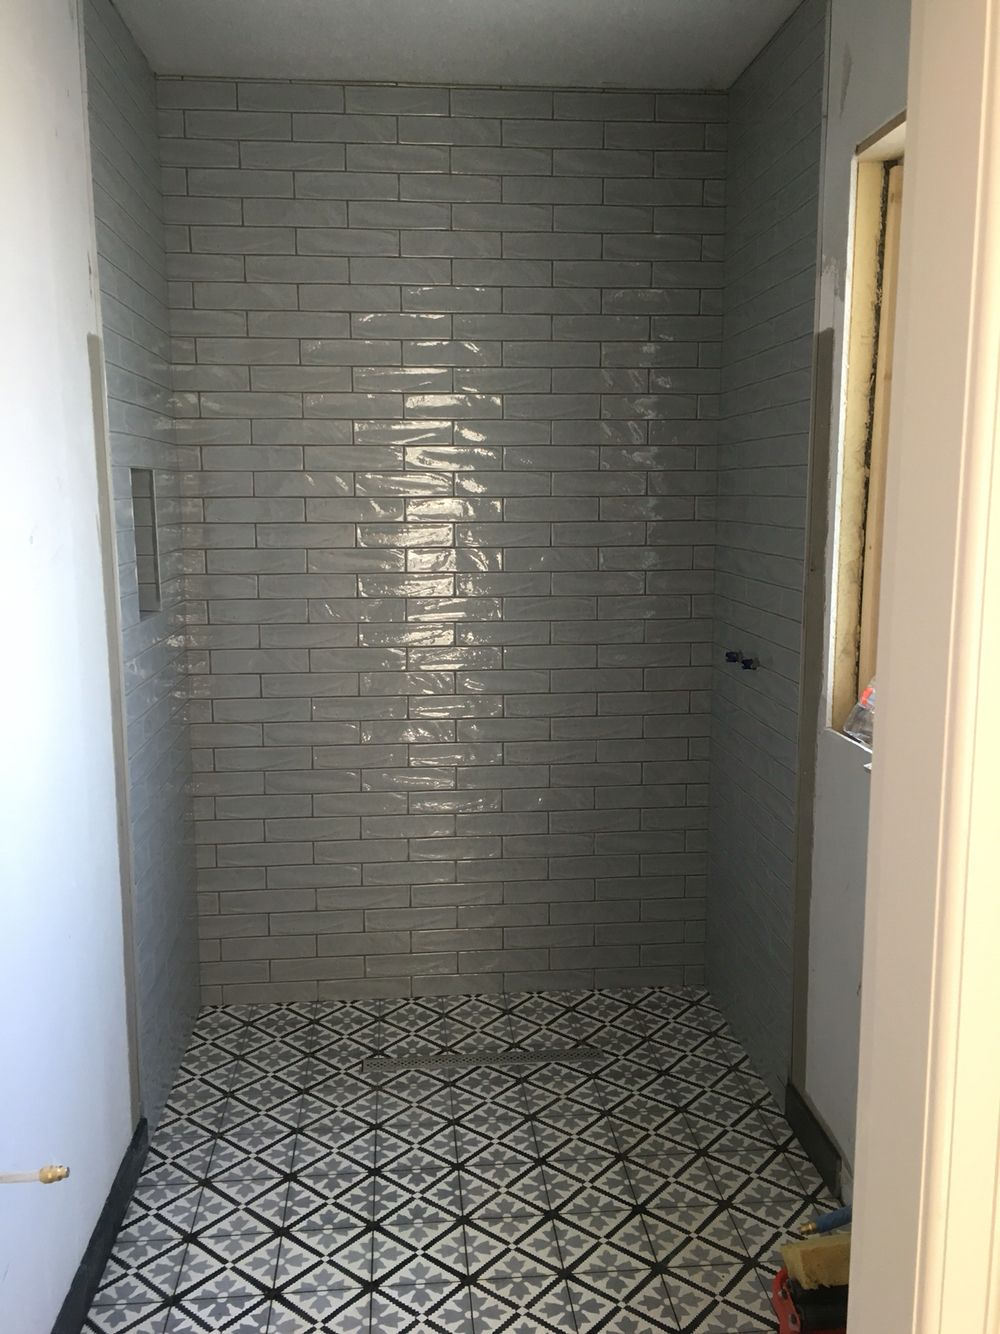 Wet Room Encaustic Tiles With Hand Made Glazed Subway Www Fossilstone Ie Tiles Encaustic Cement Tile Wet Rooms